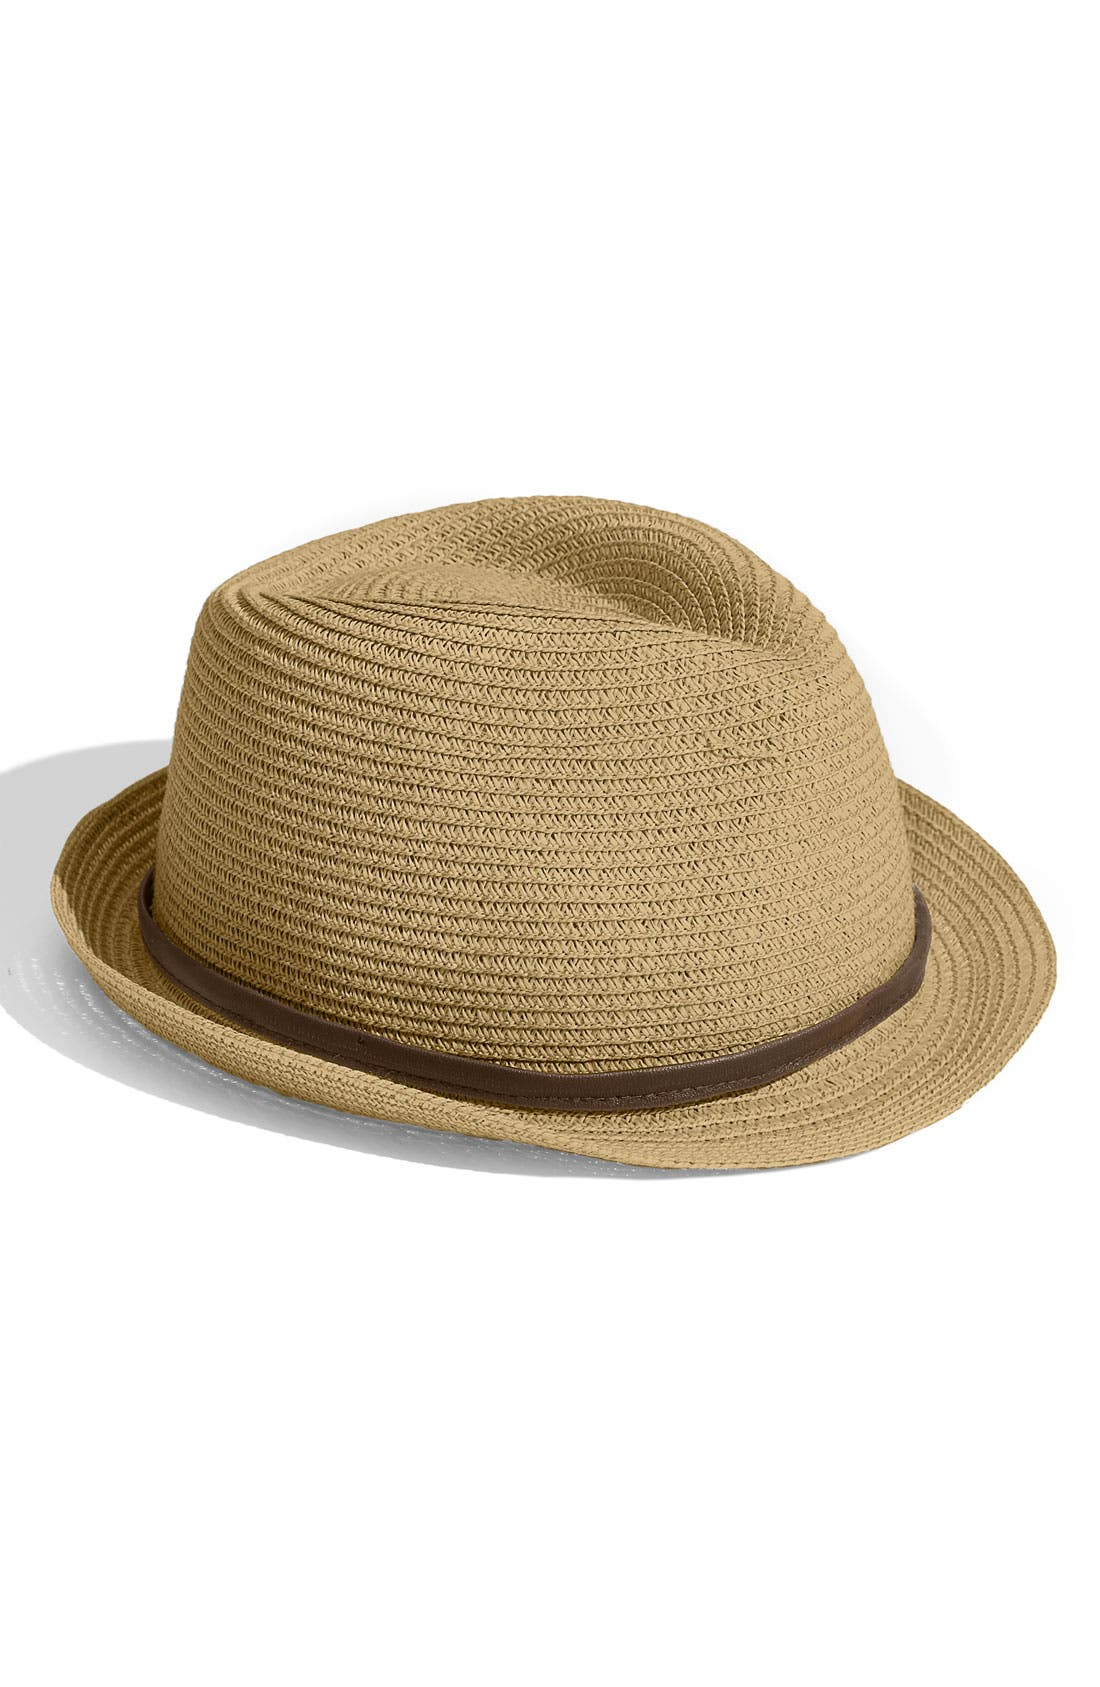 Alternate Image 1 Selected - Make + Model Straw Bowler Hat